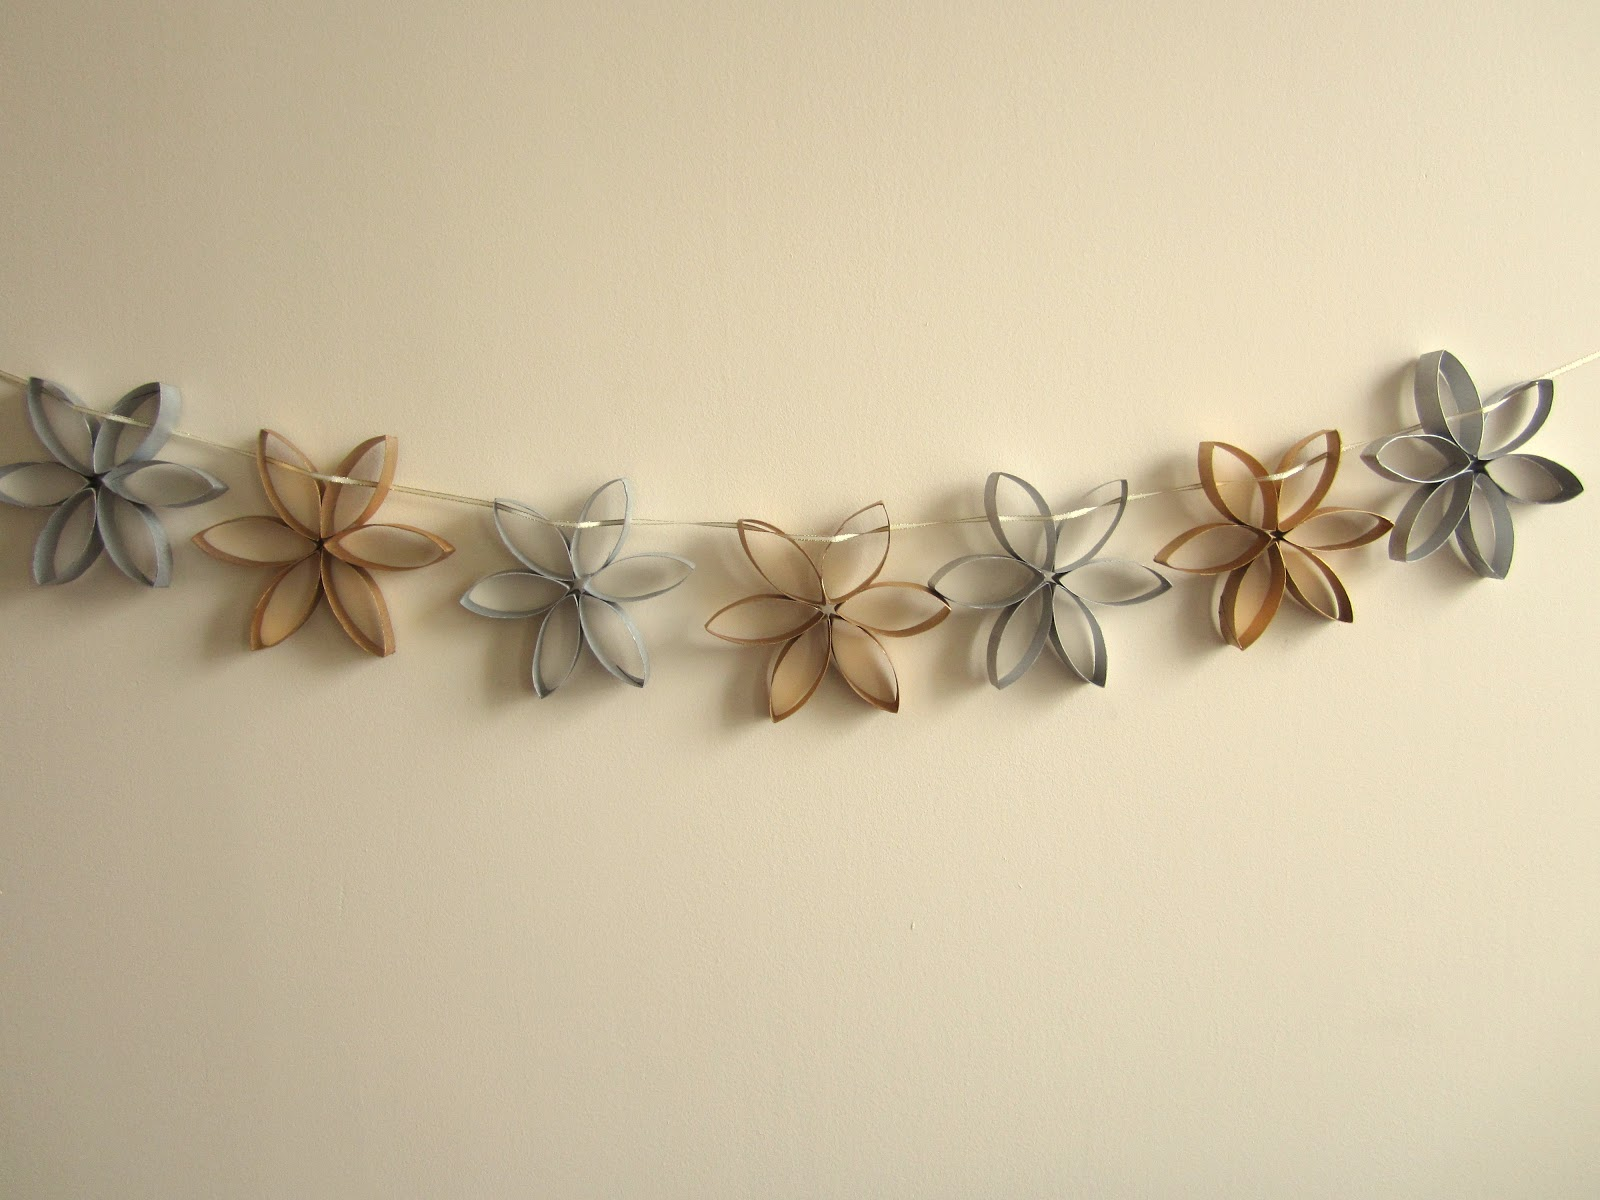 Toilet Roll Christmas Garland Crafty Weekend Craft Projects For